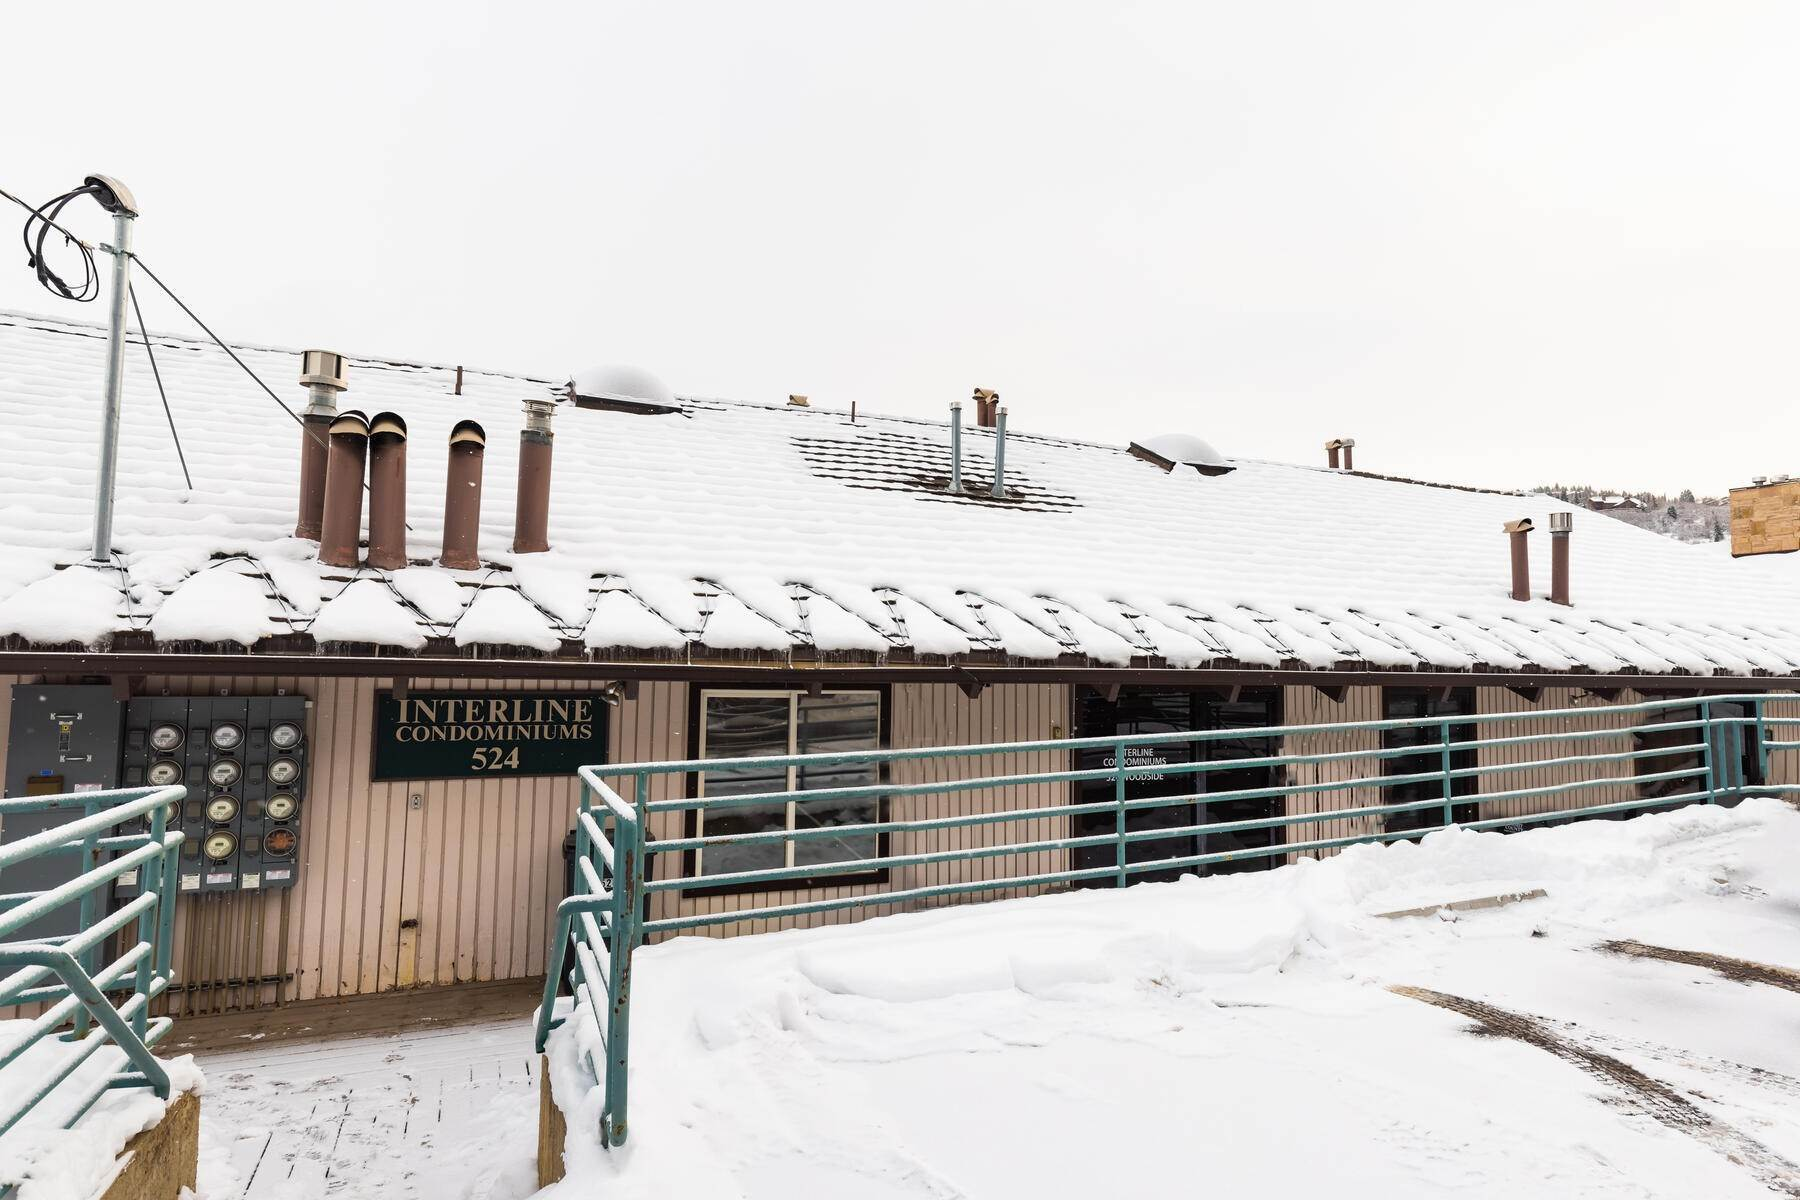 24. Condominiums for Sale at Interline Unit 2. Ultra Rare - Old Town, Park City Condo Just Steps to Skiing! 524 Woodside Ave #2 Park City, Utah 84060 United States